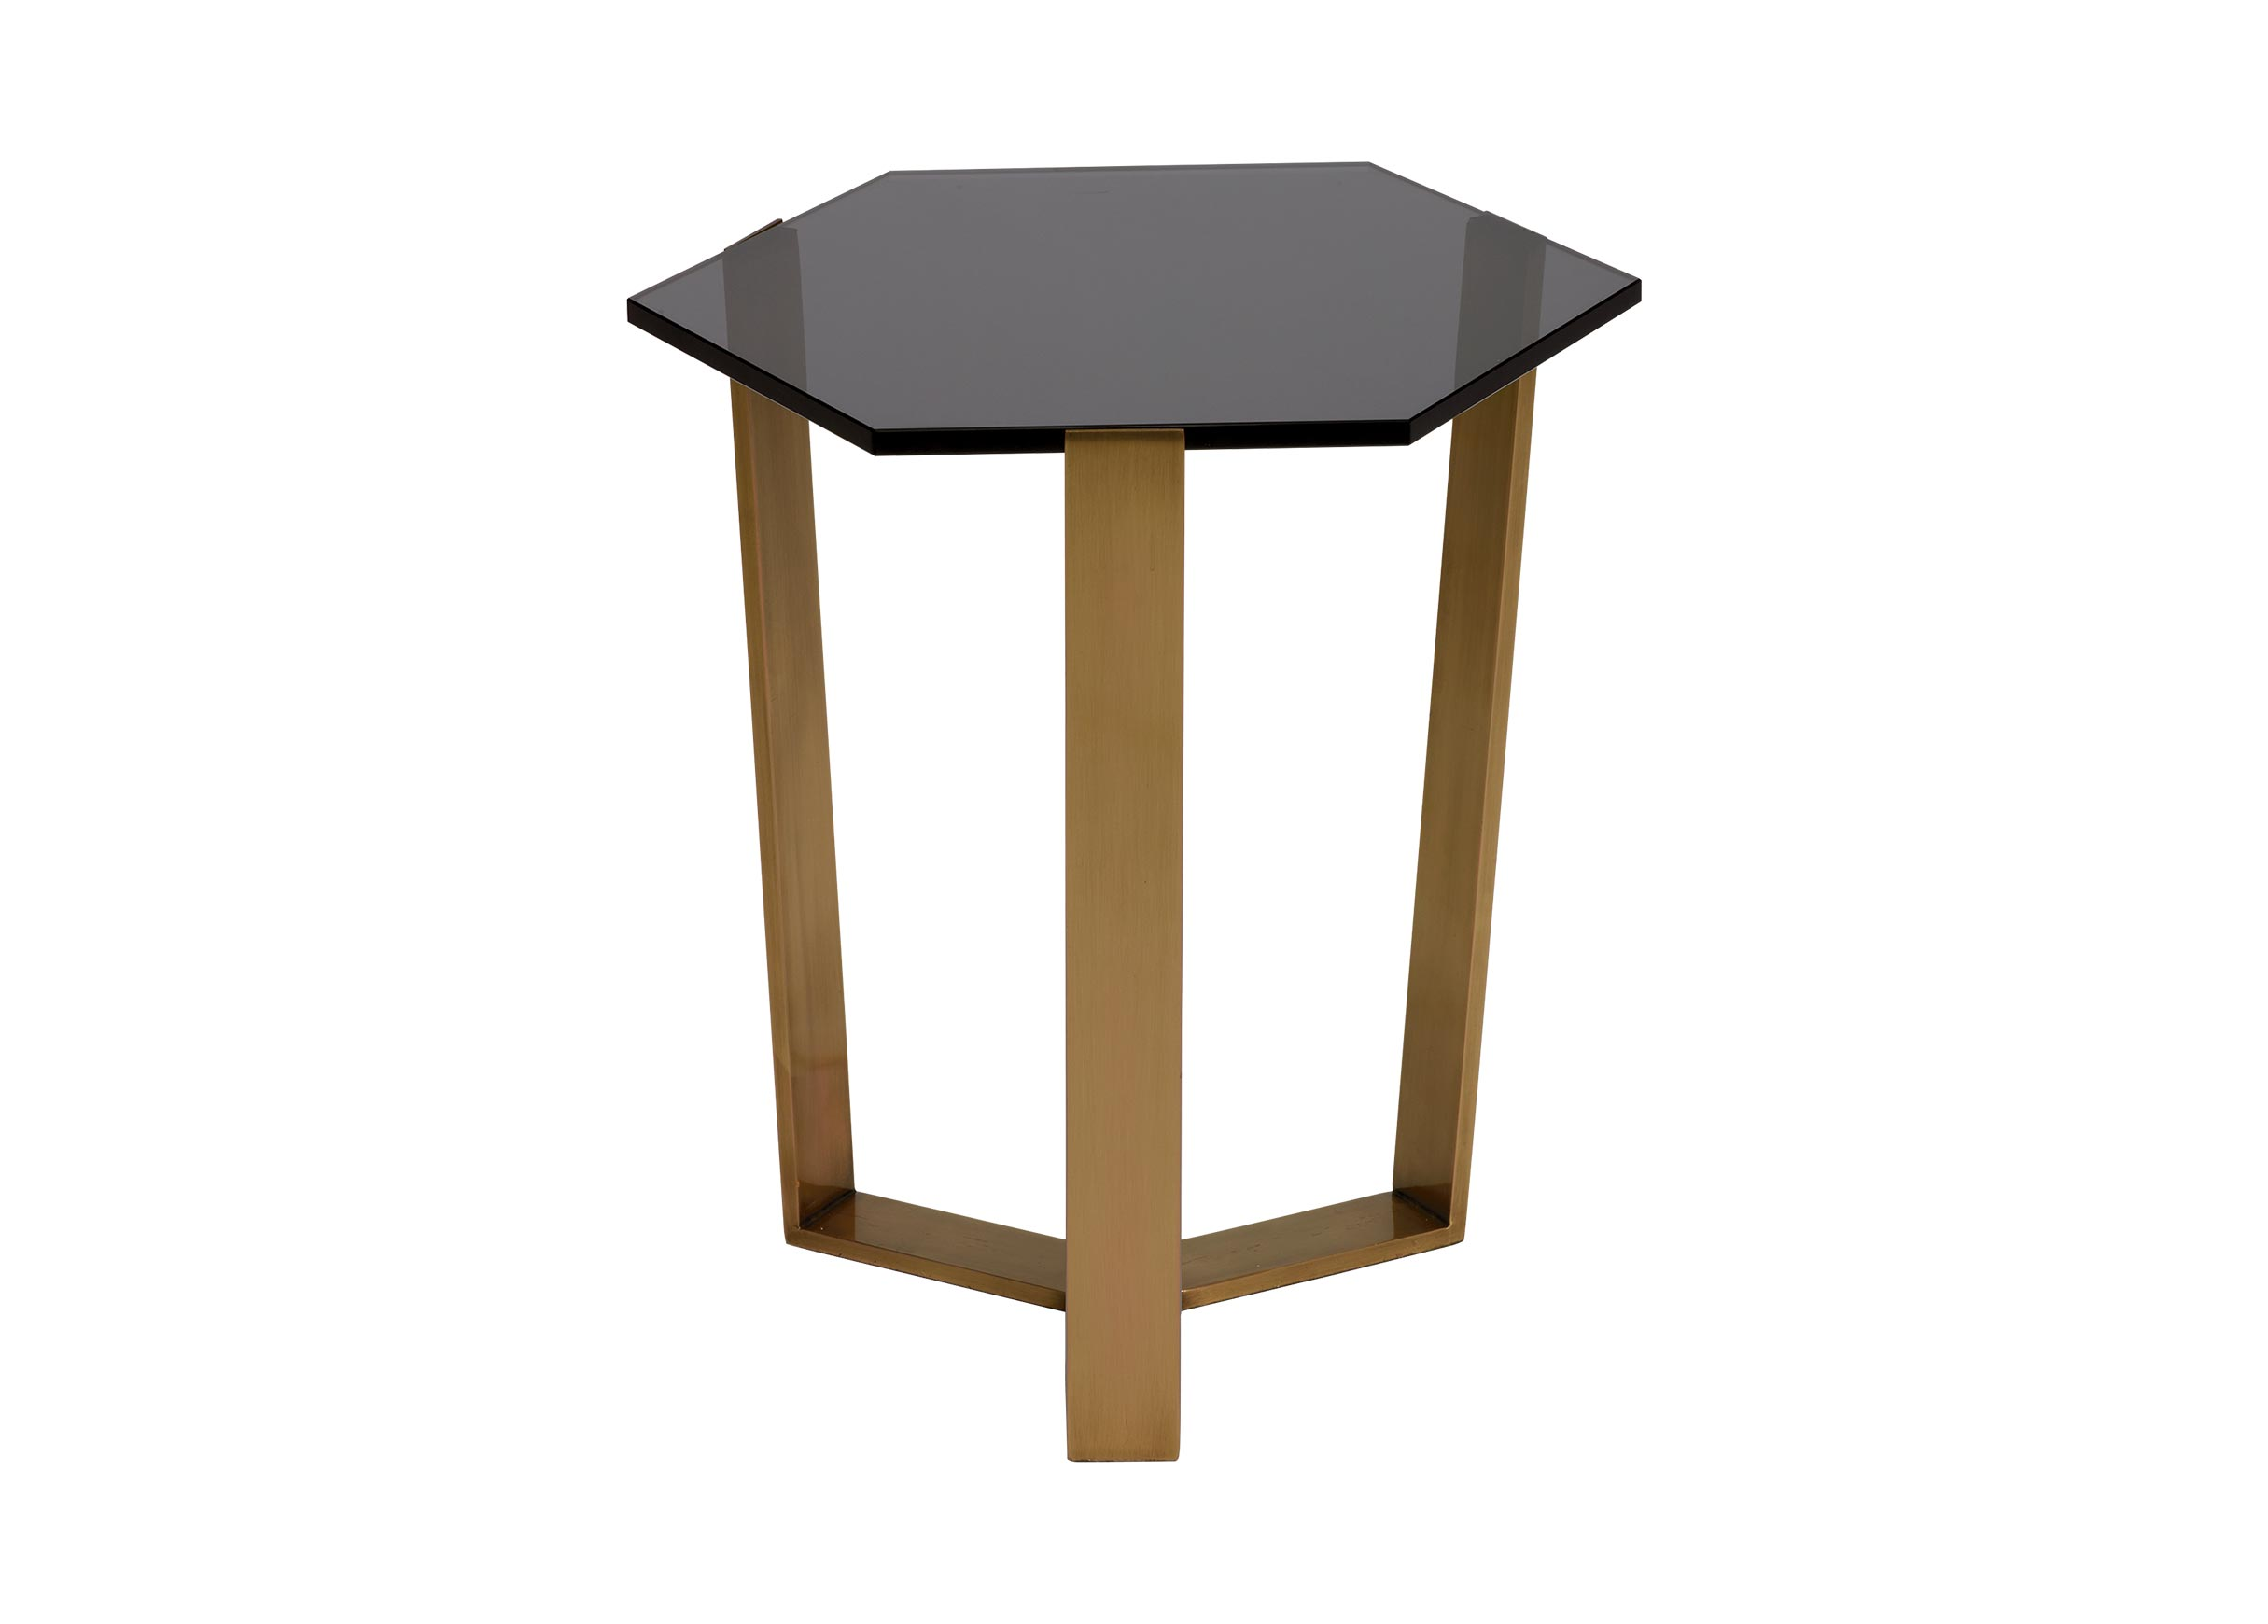 pearle smoky glass and brass accent table ethan allen metal pier one small tables cherry wood dining room wine rack modern hallway furniture bedroom tan plastic tablecloths white